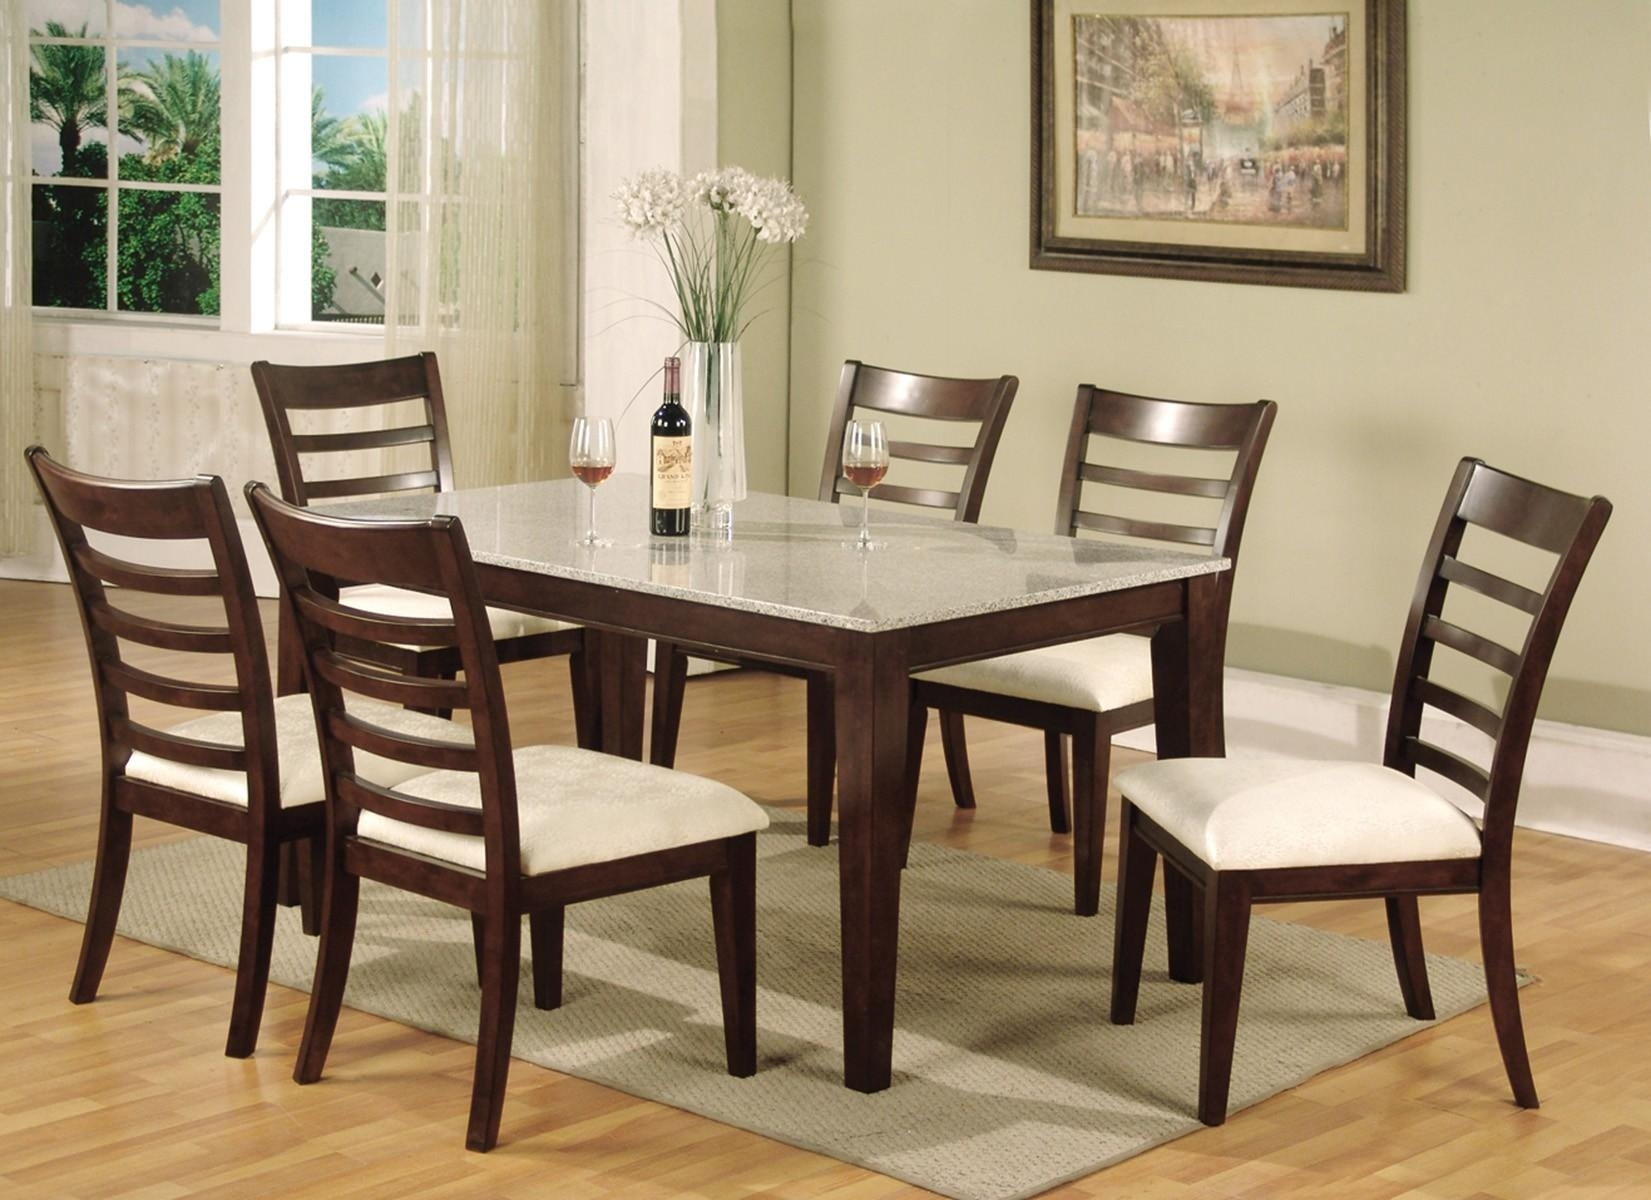 Unique Dining Table Sets – Castrophotos Regarding Most Recently Released Mallard 7 Piece Extension Dining Sets (Image 19 of 20)